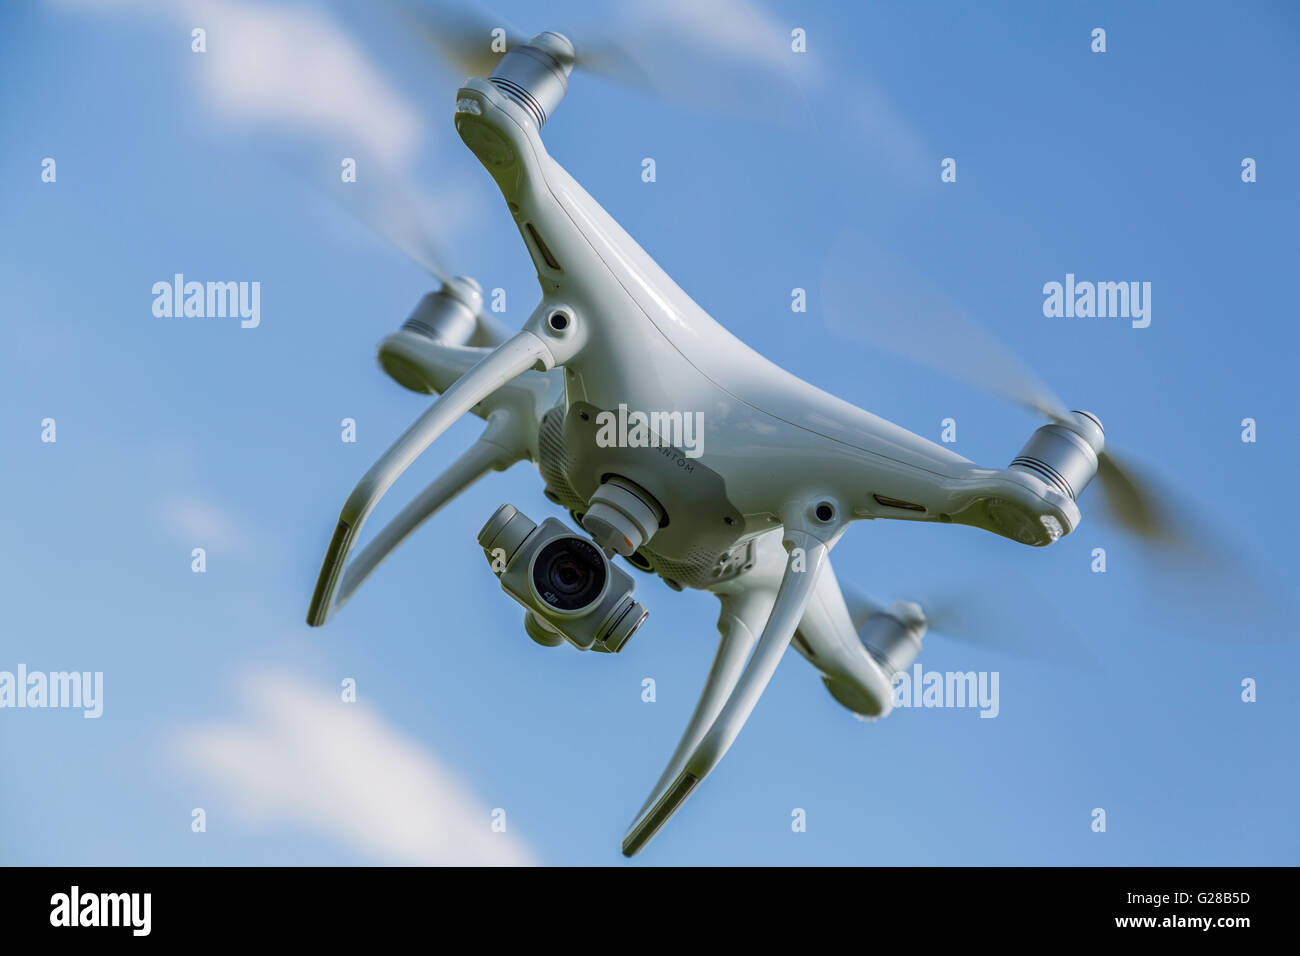 Close up image of a recreational drone / quadcopter UK England - Stock Image